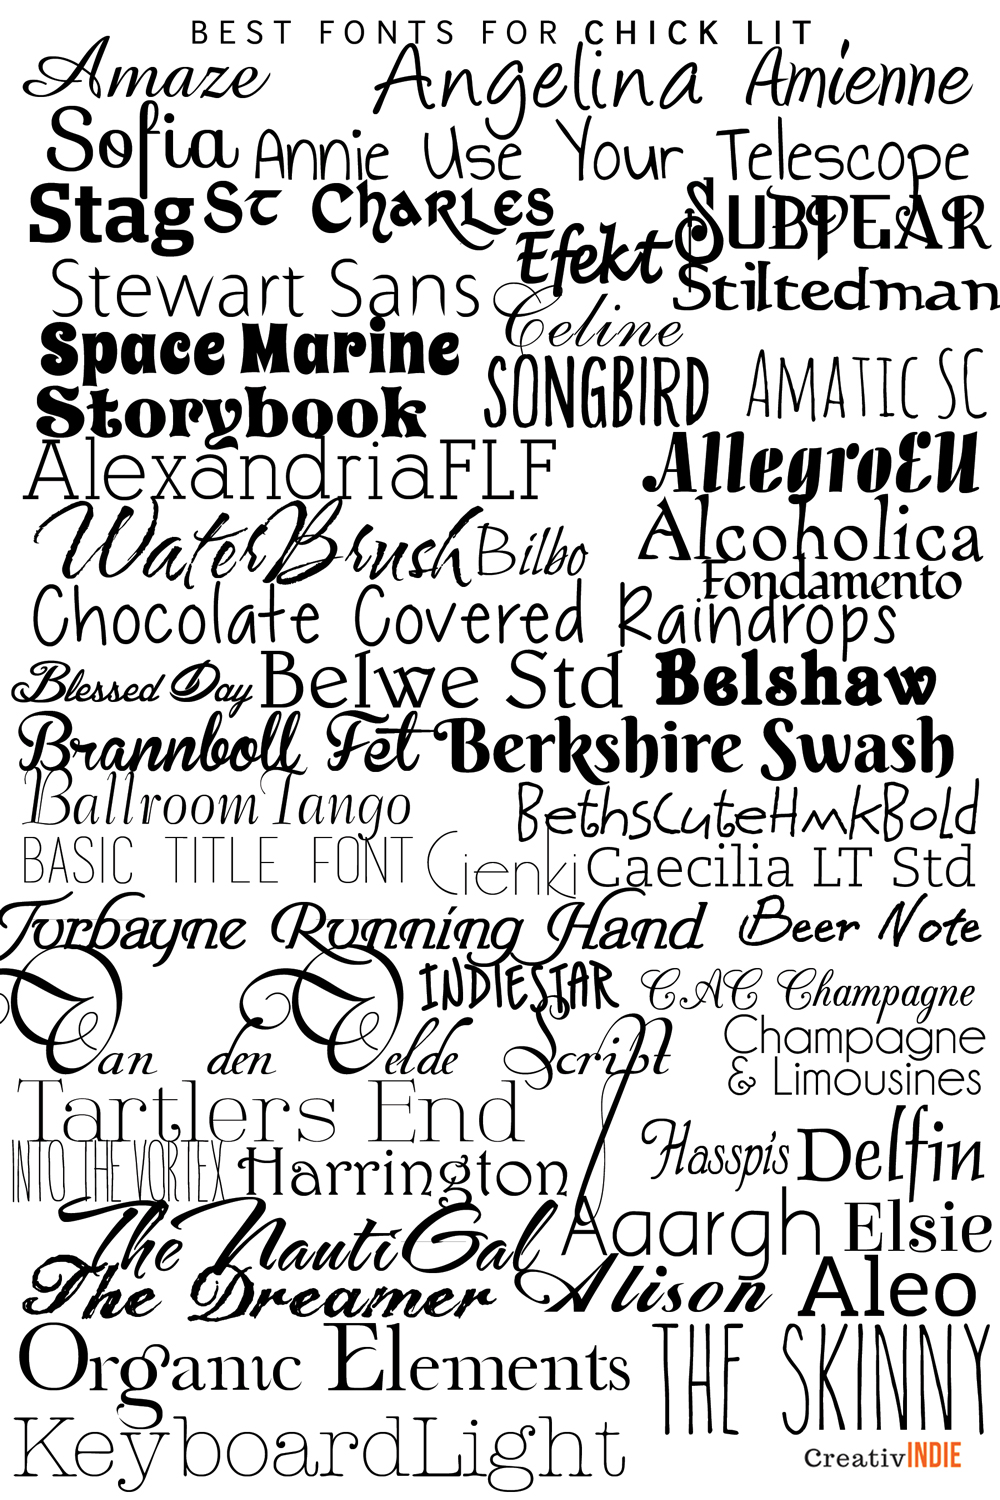 Book Cover Fonts Fantasy ~ Fool proof fonts to use for your book cover design